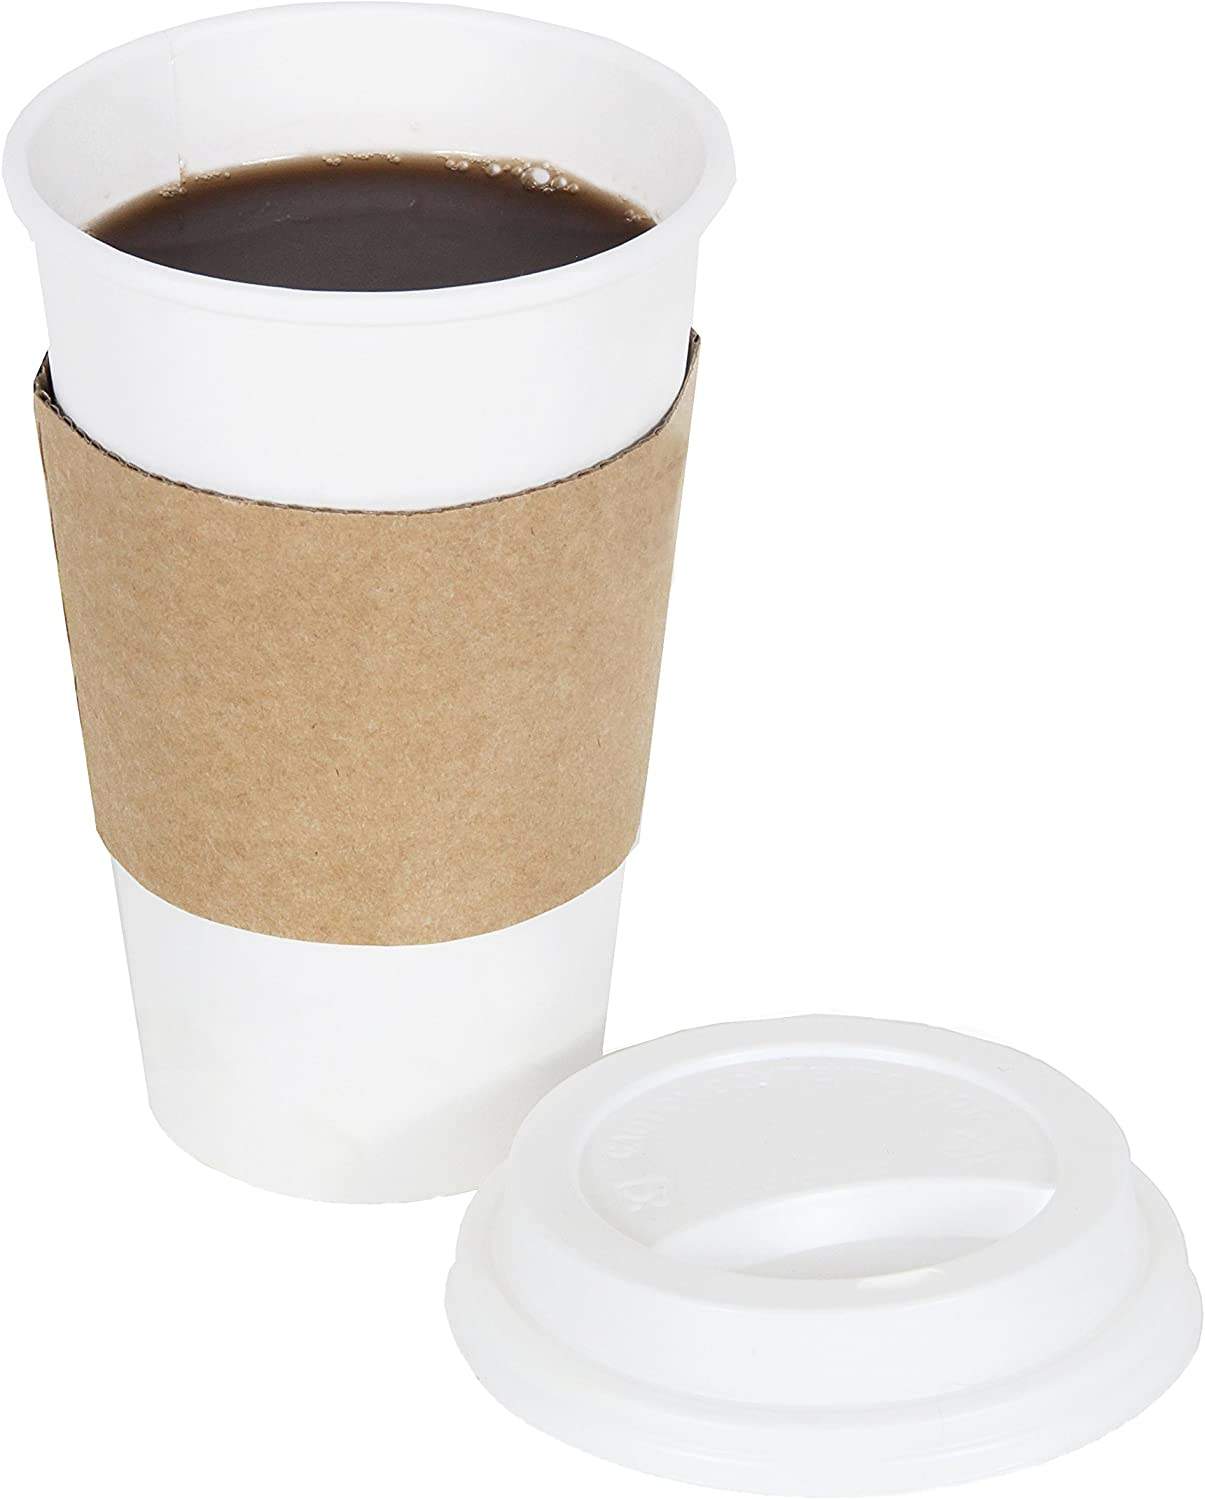 CucinaPrime 16oz White Disposable To-Go Paper Coffee/Hot Beverage Cups with White Lids and Sleeves- 50 Pack